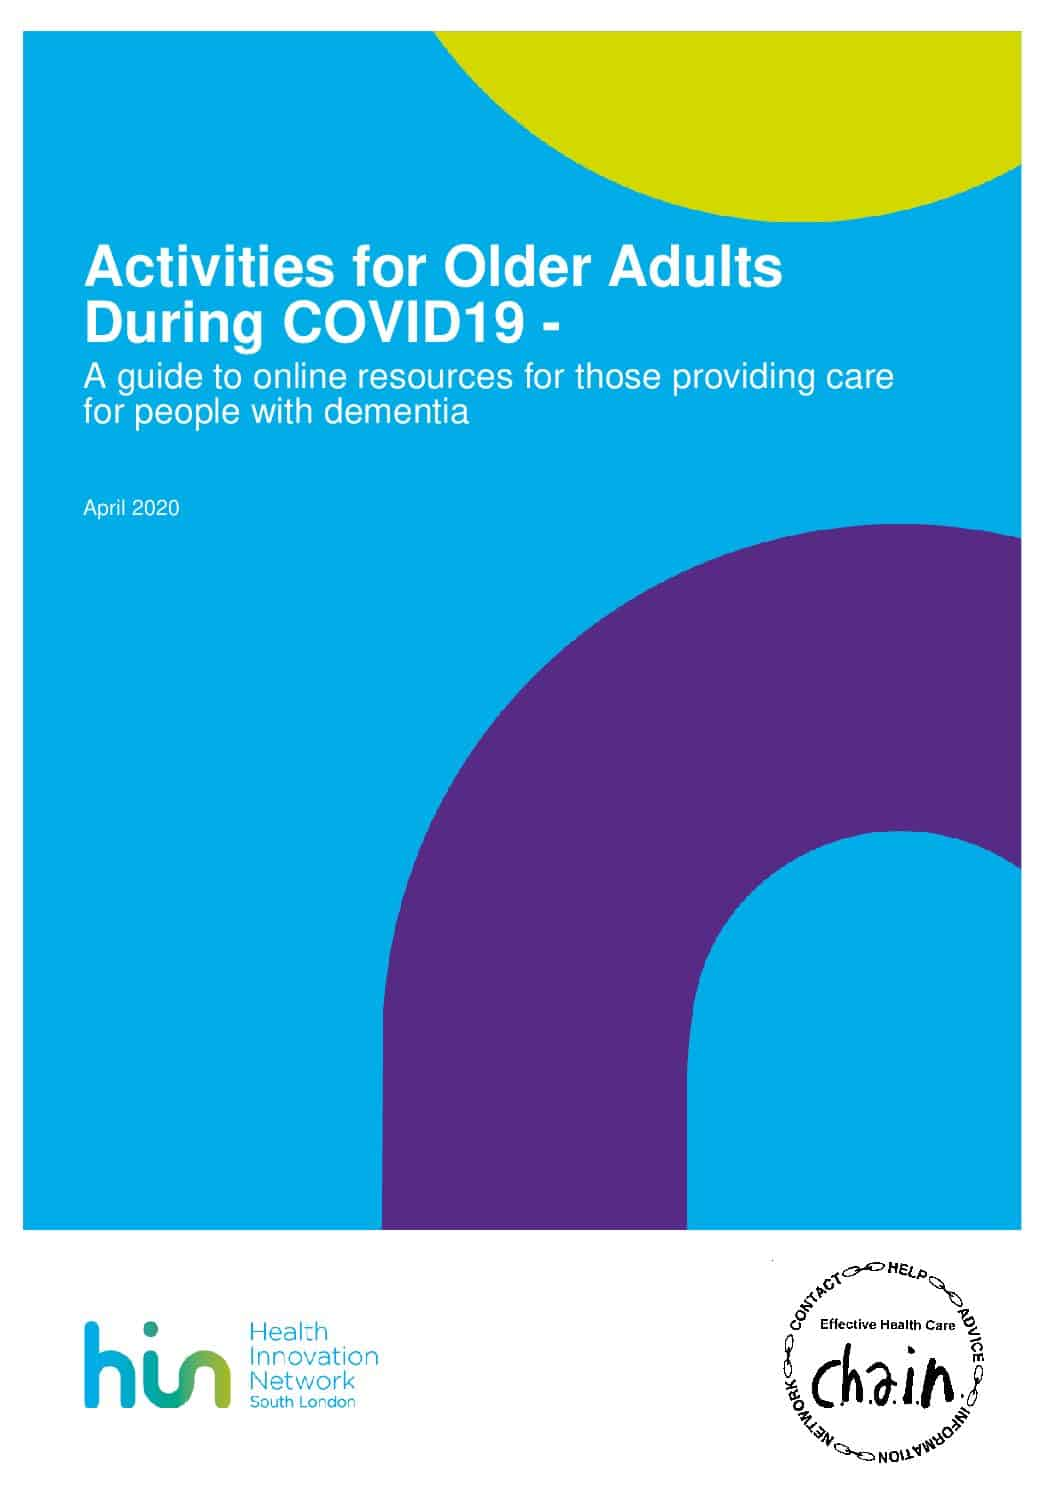 Maintaining-Activities-for-Older-Adults-during-COVID19